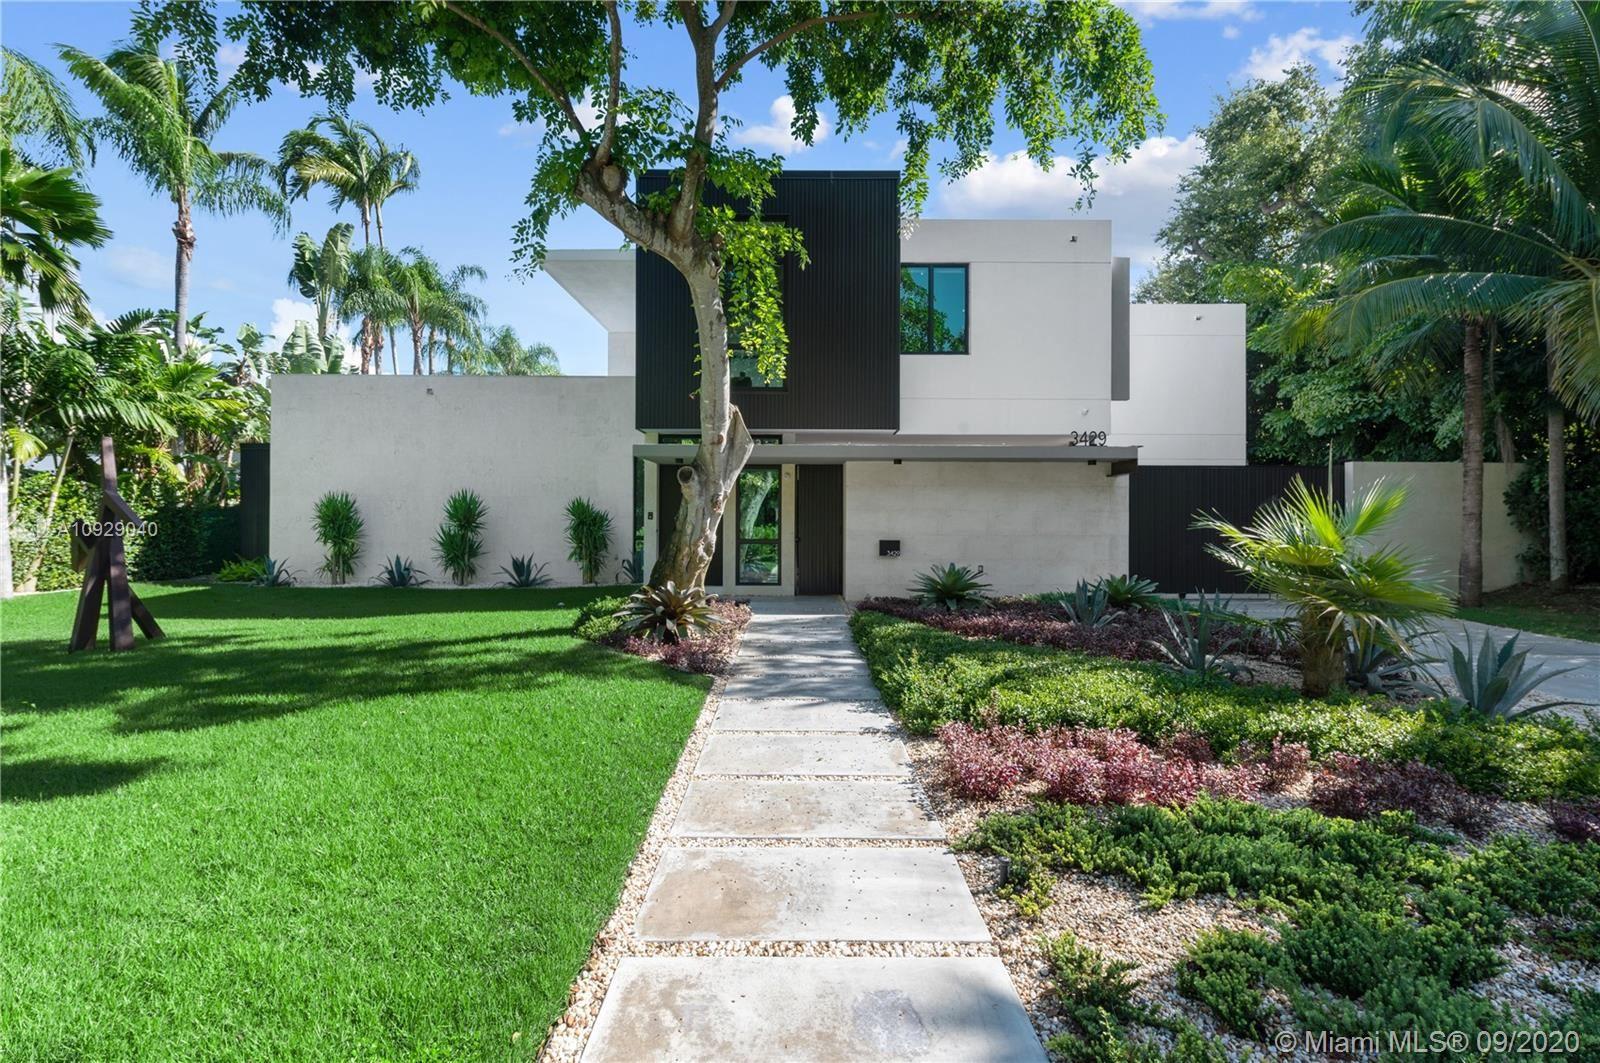 3429 N Moorings Way, Miami, FL 33133 - #: A10929040